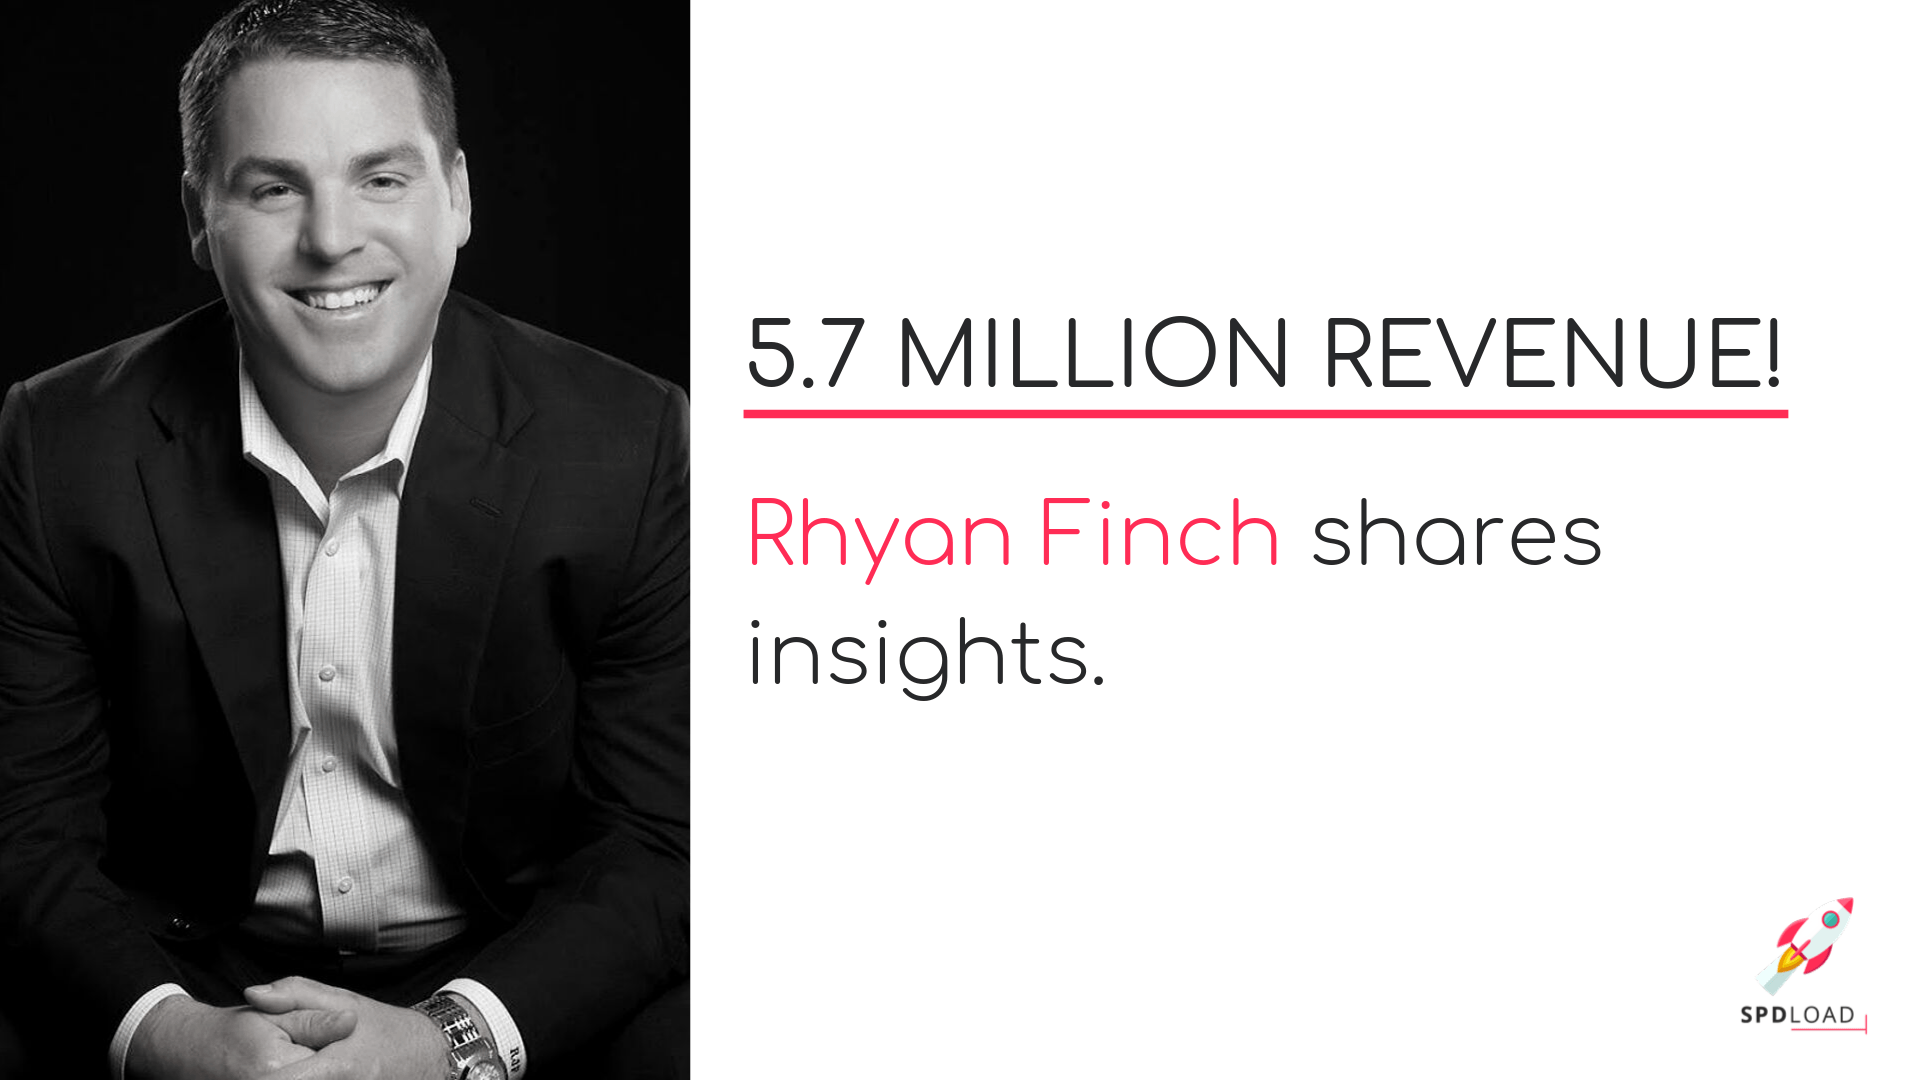 Rhyan Finch shares insights